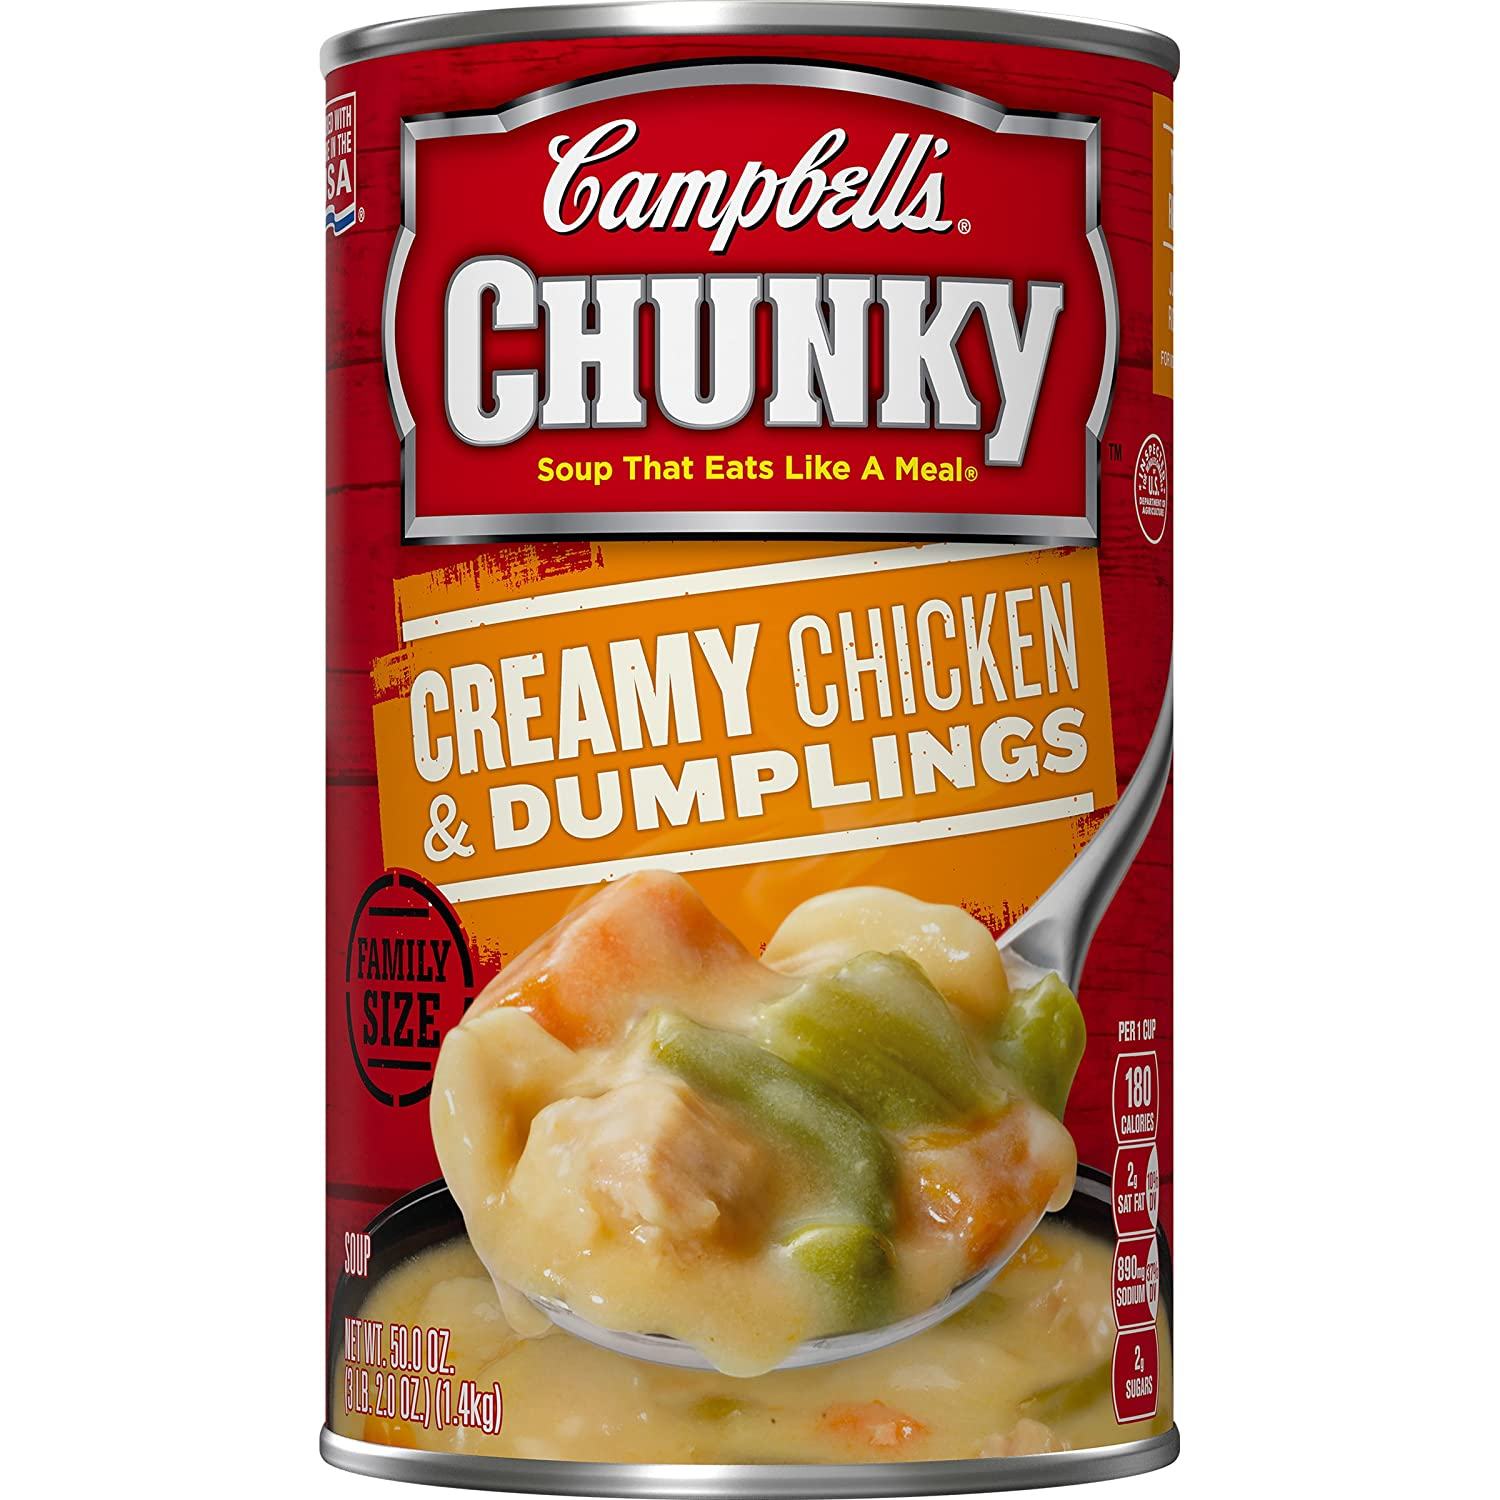 Amazon.com : Campbells Chunky Soup, Creamy Chicken & Dumplings, Family Size, 50 Ounce (Pack of 6) : Campbell S Chiken And Dumpling Soup : Grocery & Gourmet ...